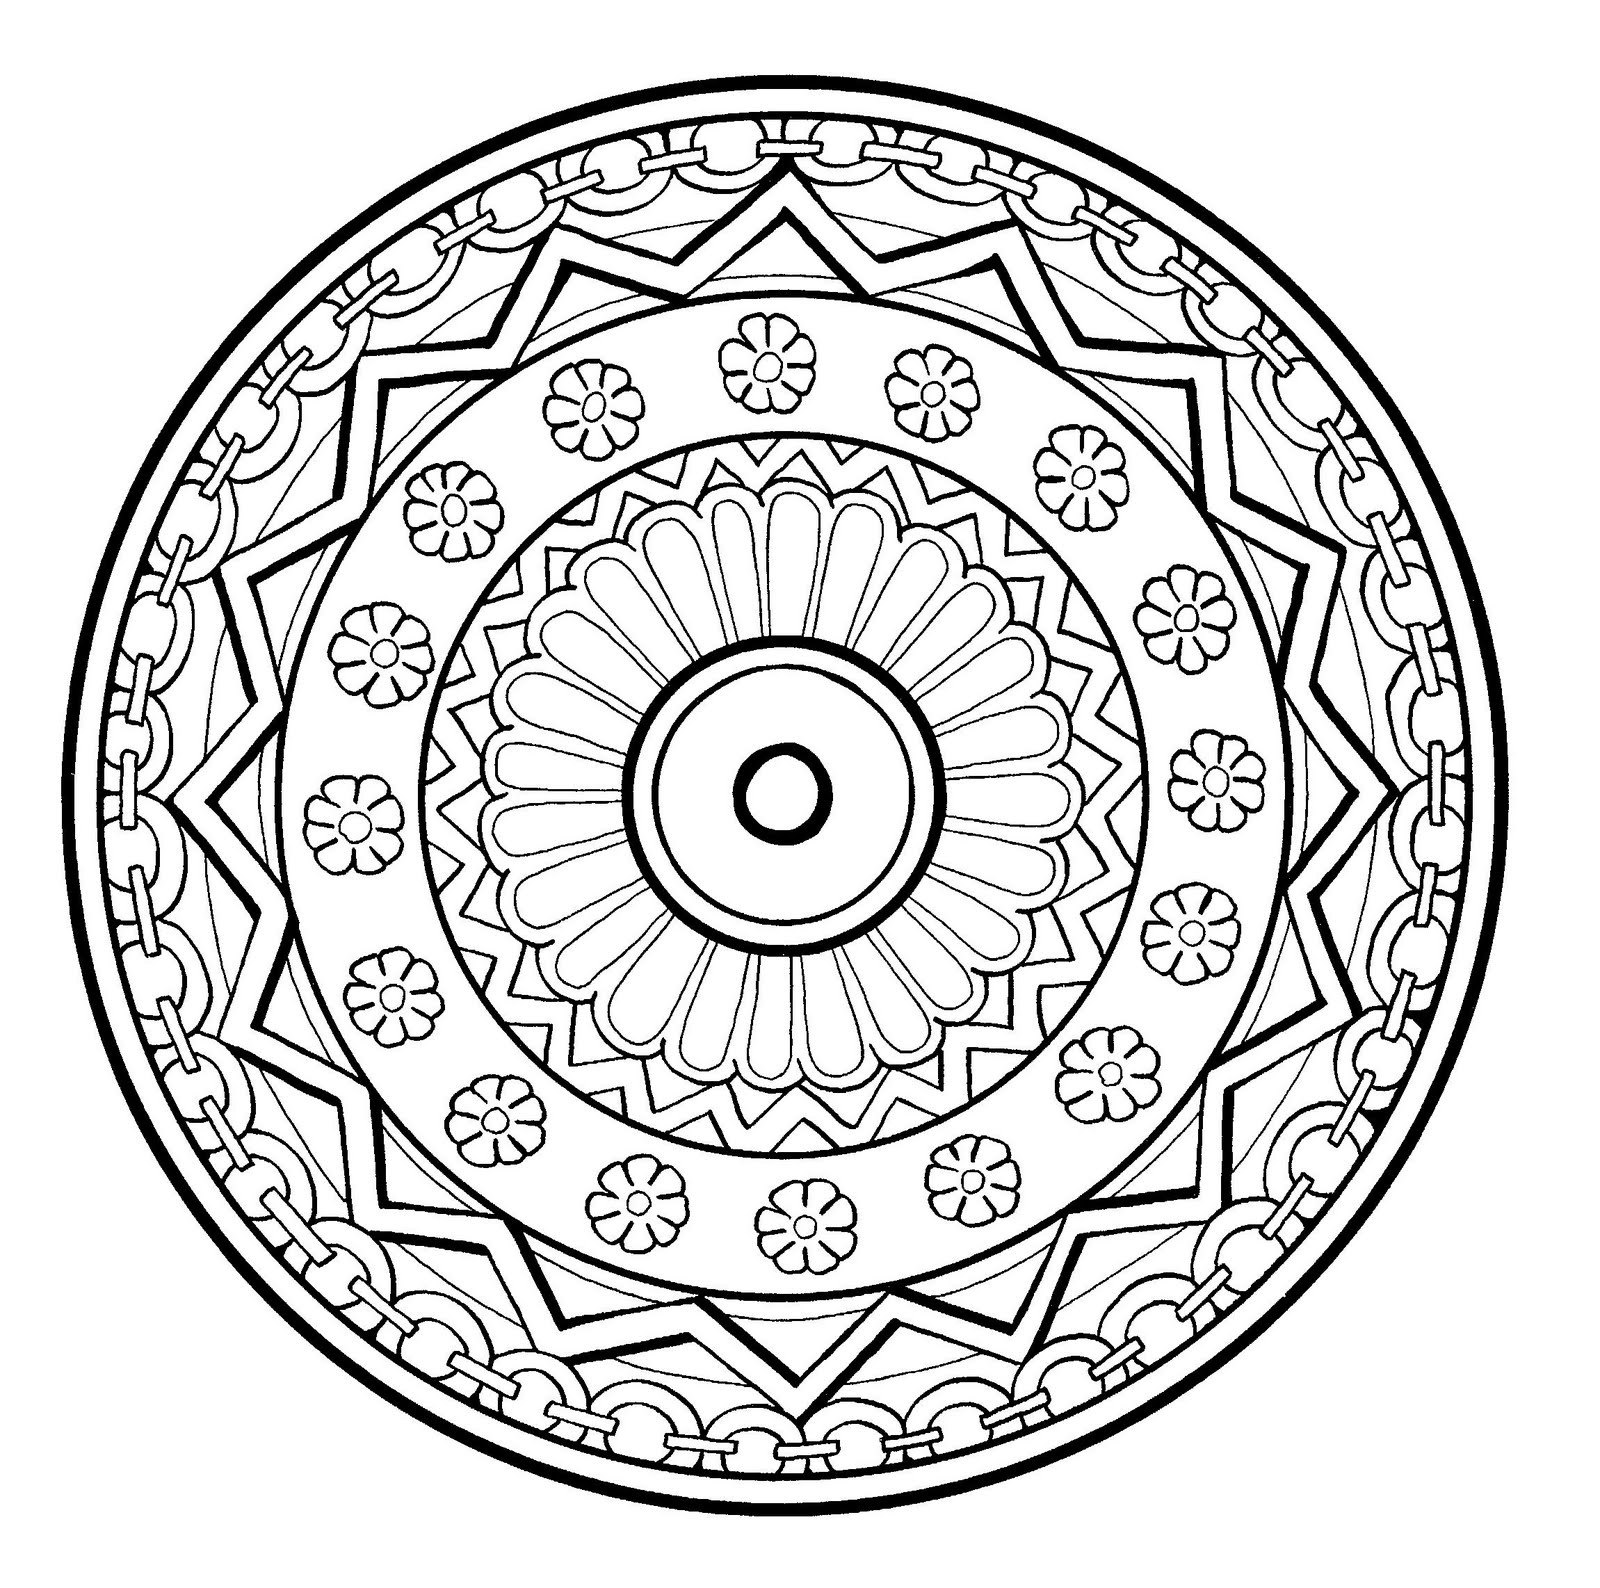 Mandala to color flowers vegetation to print 7 | Mandalas with ...